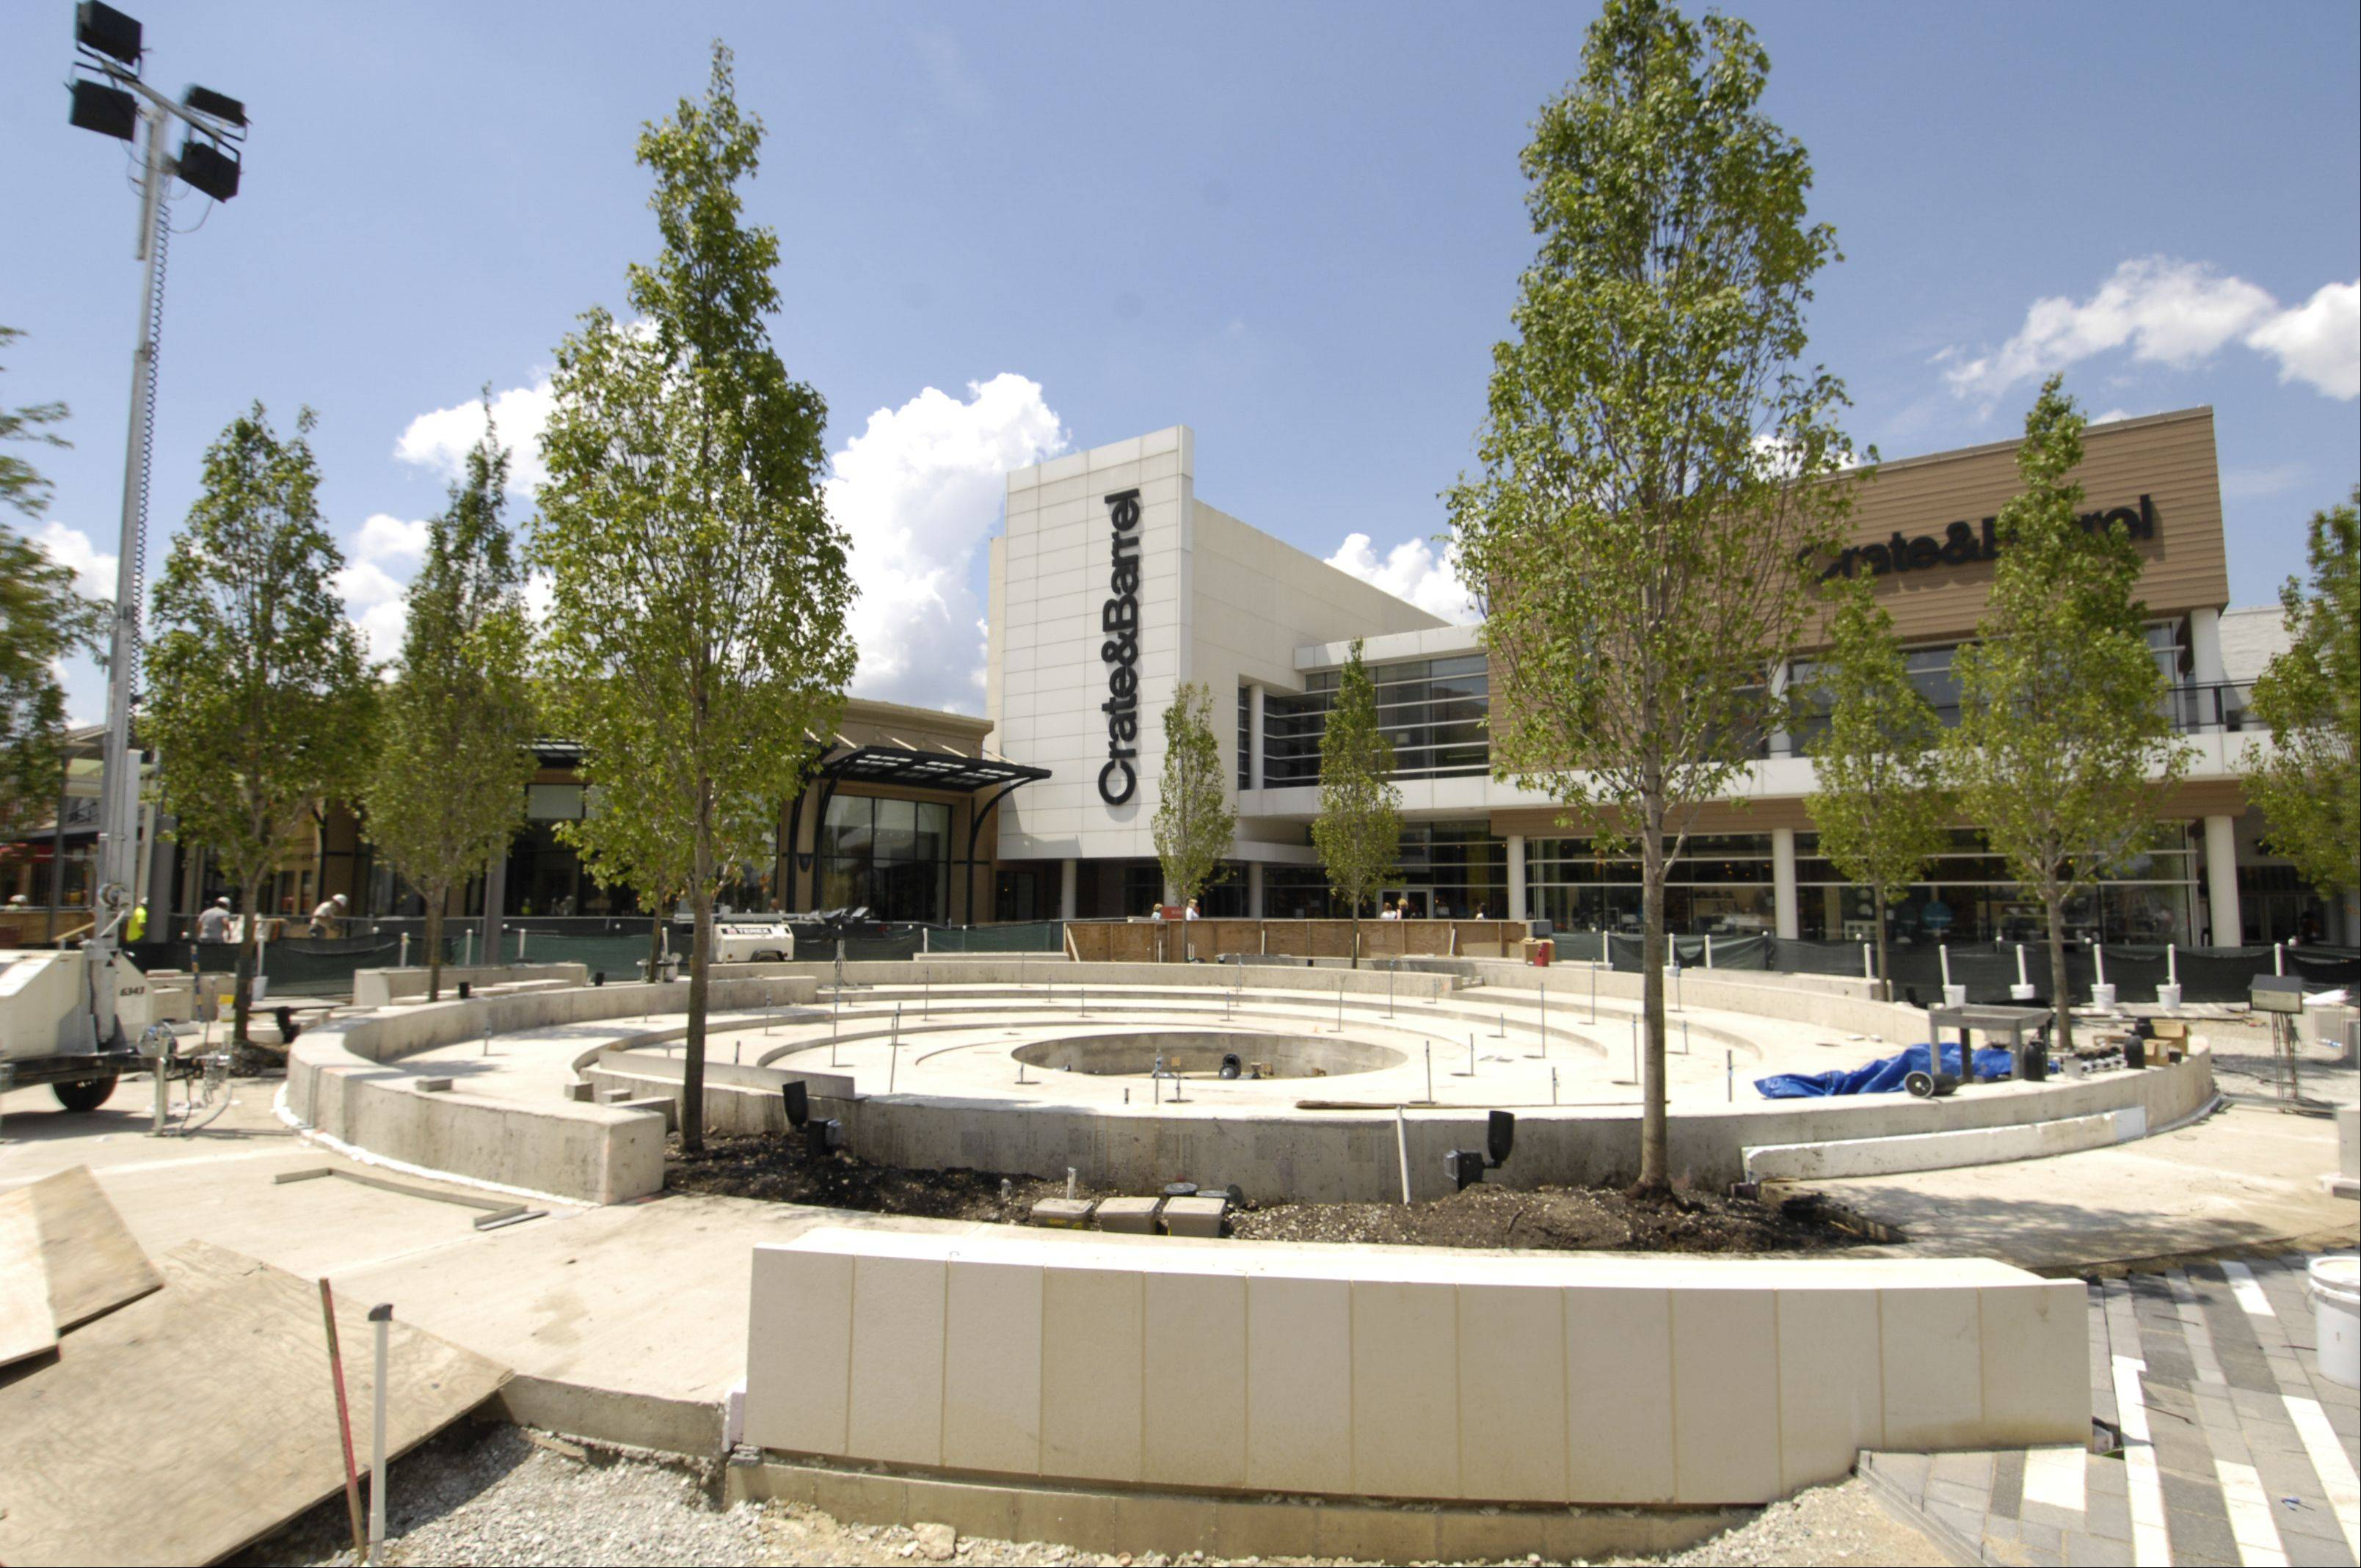 oakbrook center restaurants il. oakbrook center is in the midst of largest renovation project outdoor mall\u0027s 51 restaurants il r